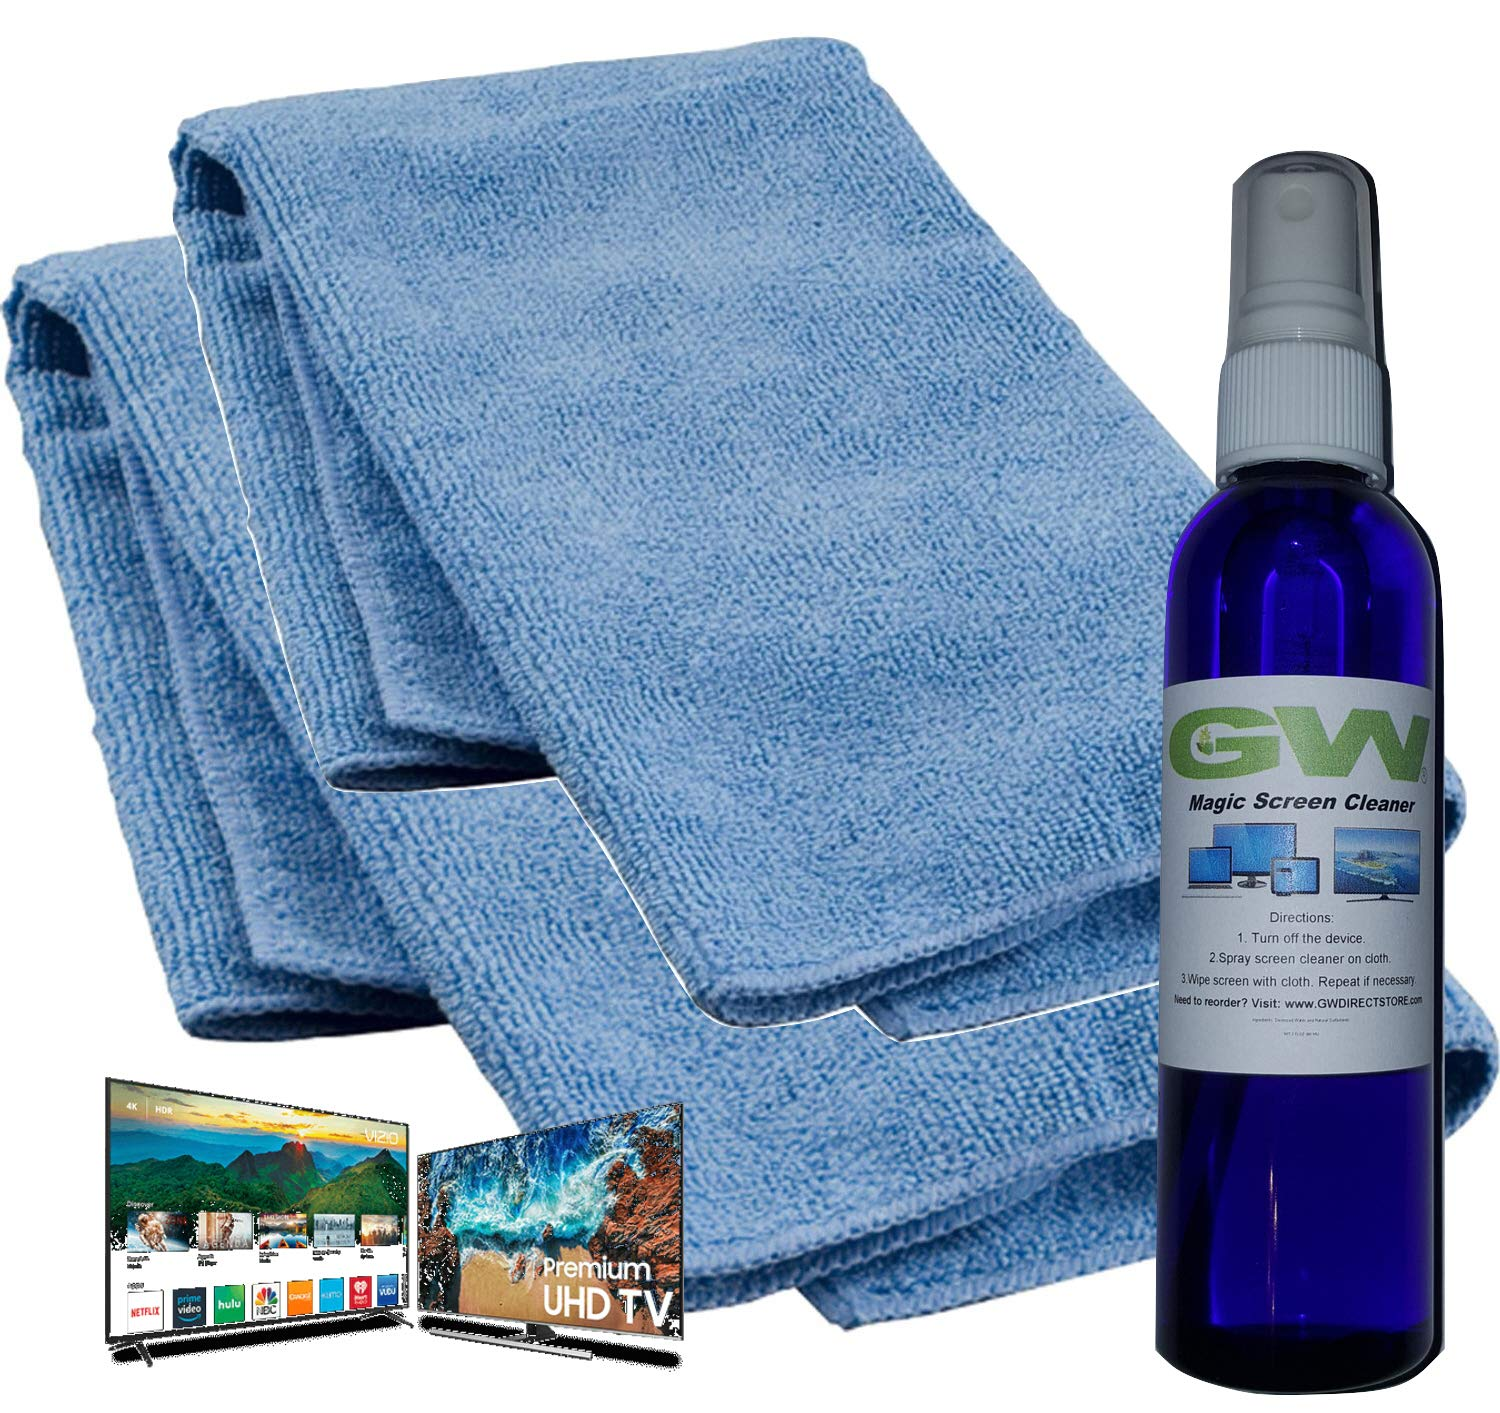 GW Deluxe Magic Screen Cleaner Kit for Samsung, LG, Sony, Ultra HD 4k HDR OLED TV, Laptop and iPad Screens with 2 Premium Microfiber Cloths and Larger Spray Bottle